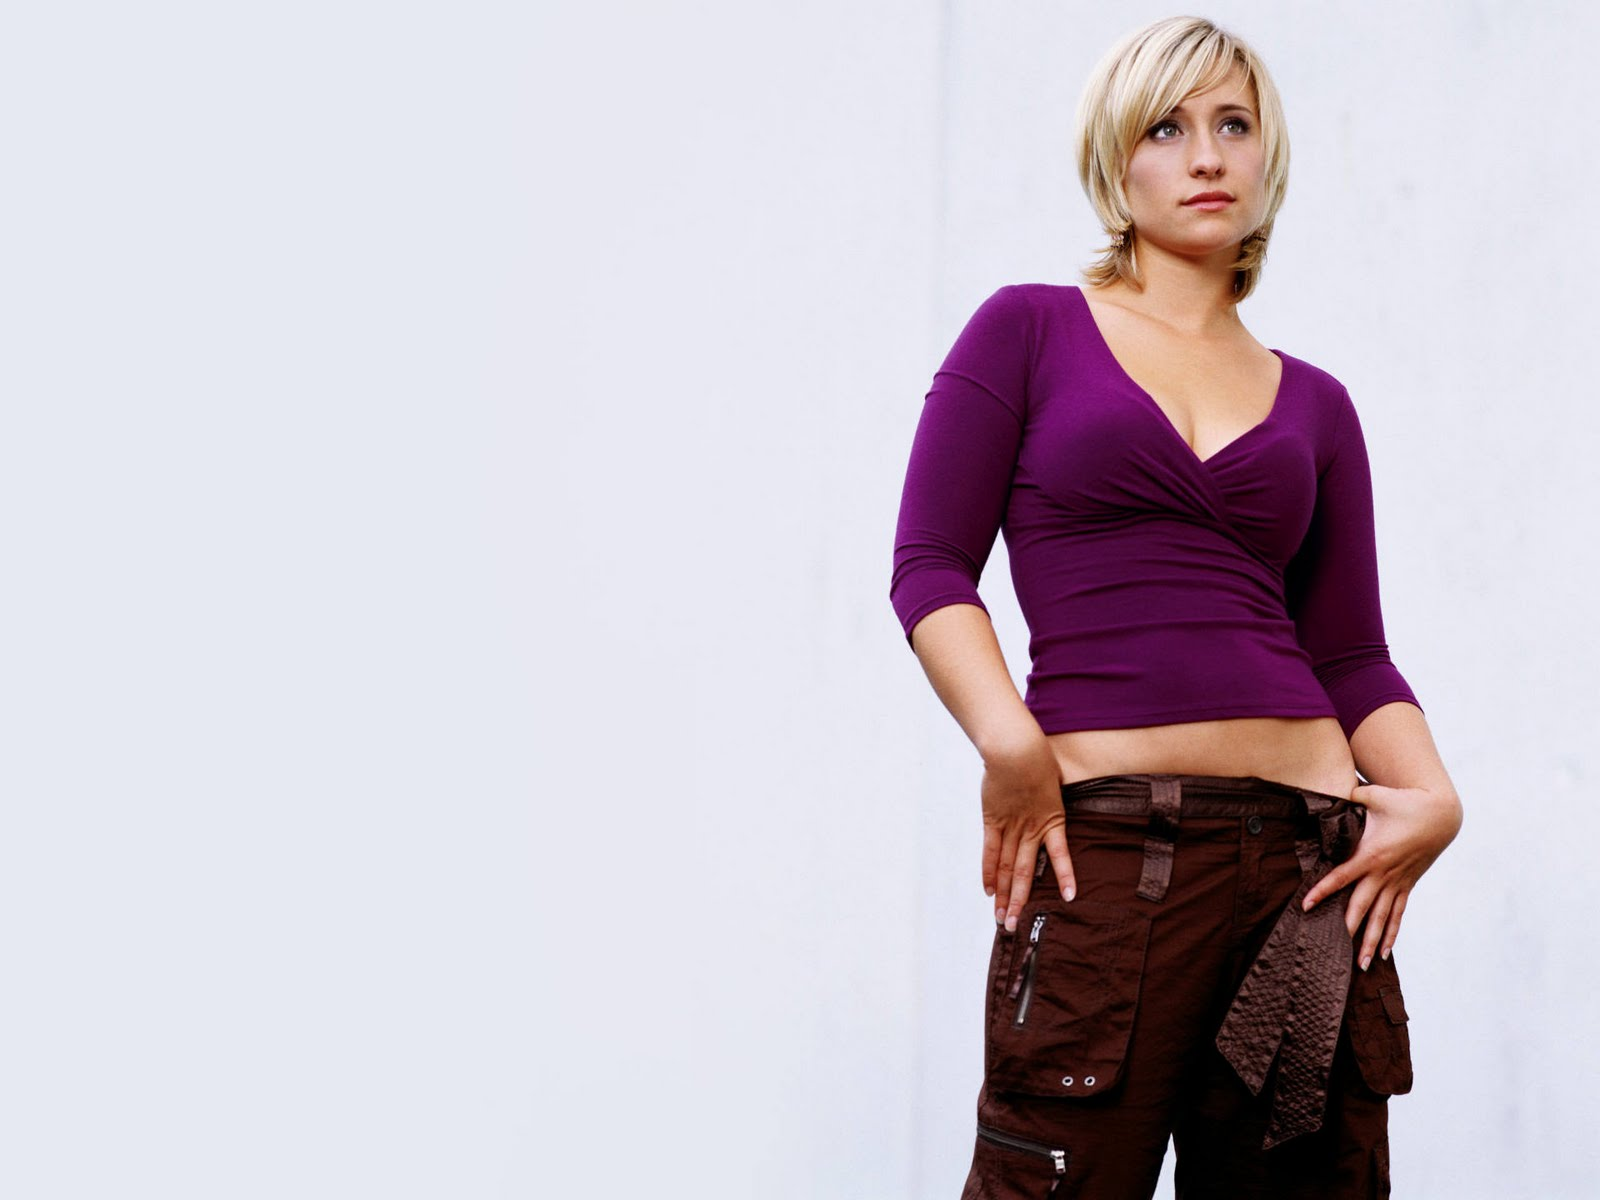 Hot Allison Mack nude (36 foto and video), Topless, Fappening, Feet, cameltoe 2006